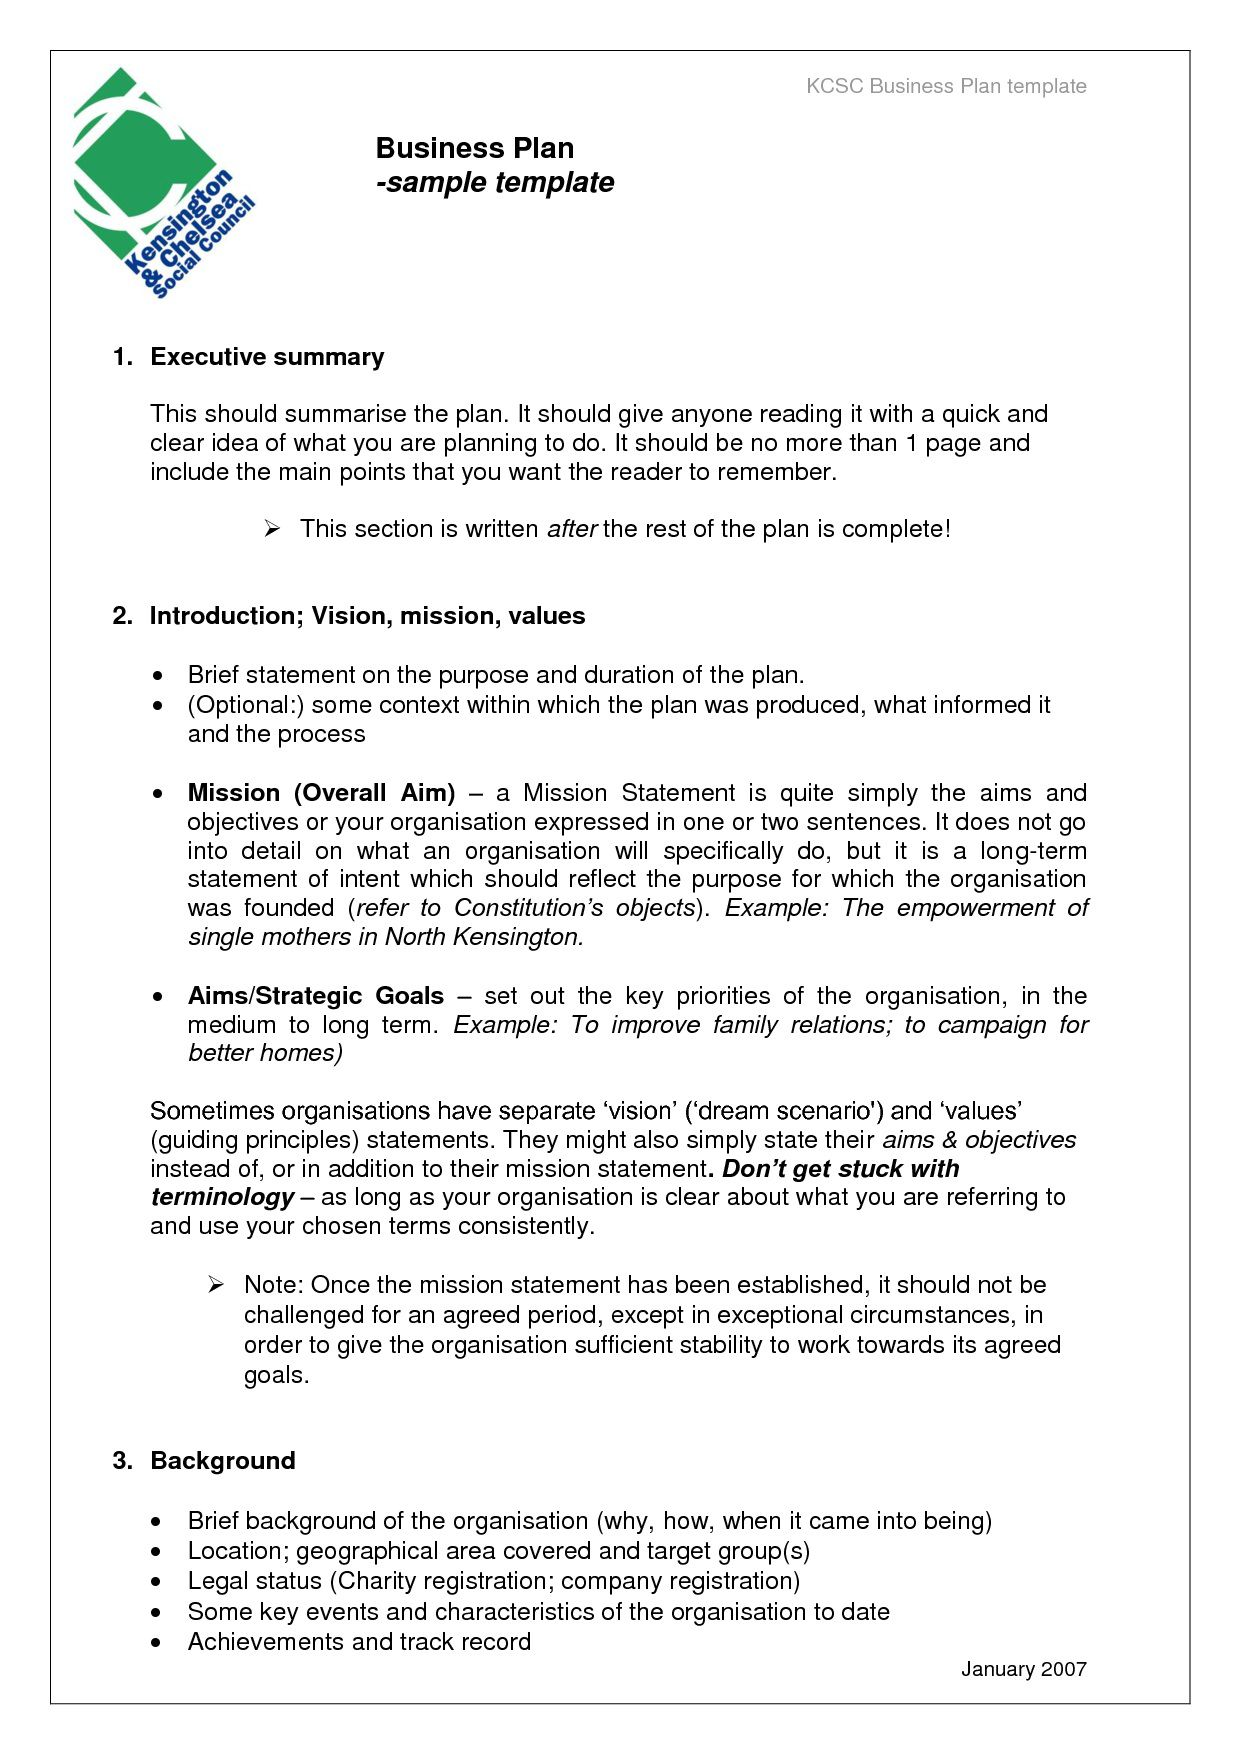 007 Marvelou Free Busines Plan Template Word Highest Clarity  Download Document Sample DocFull